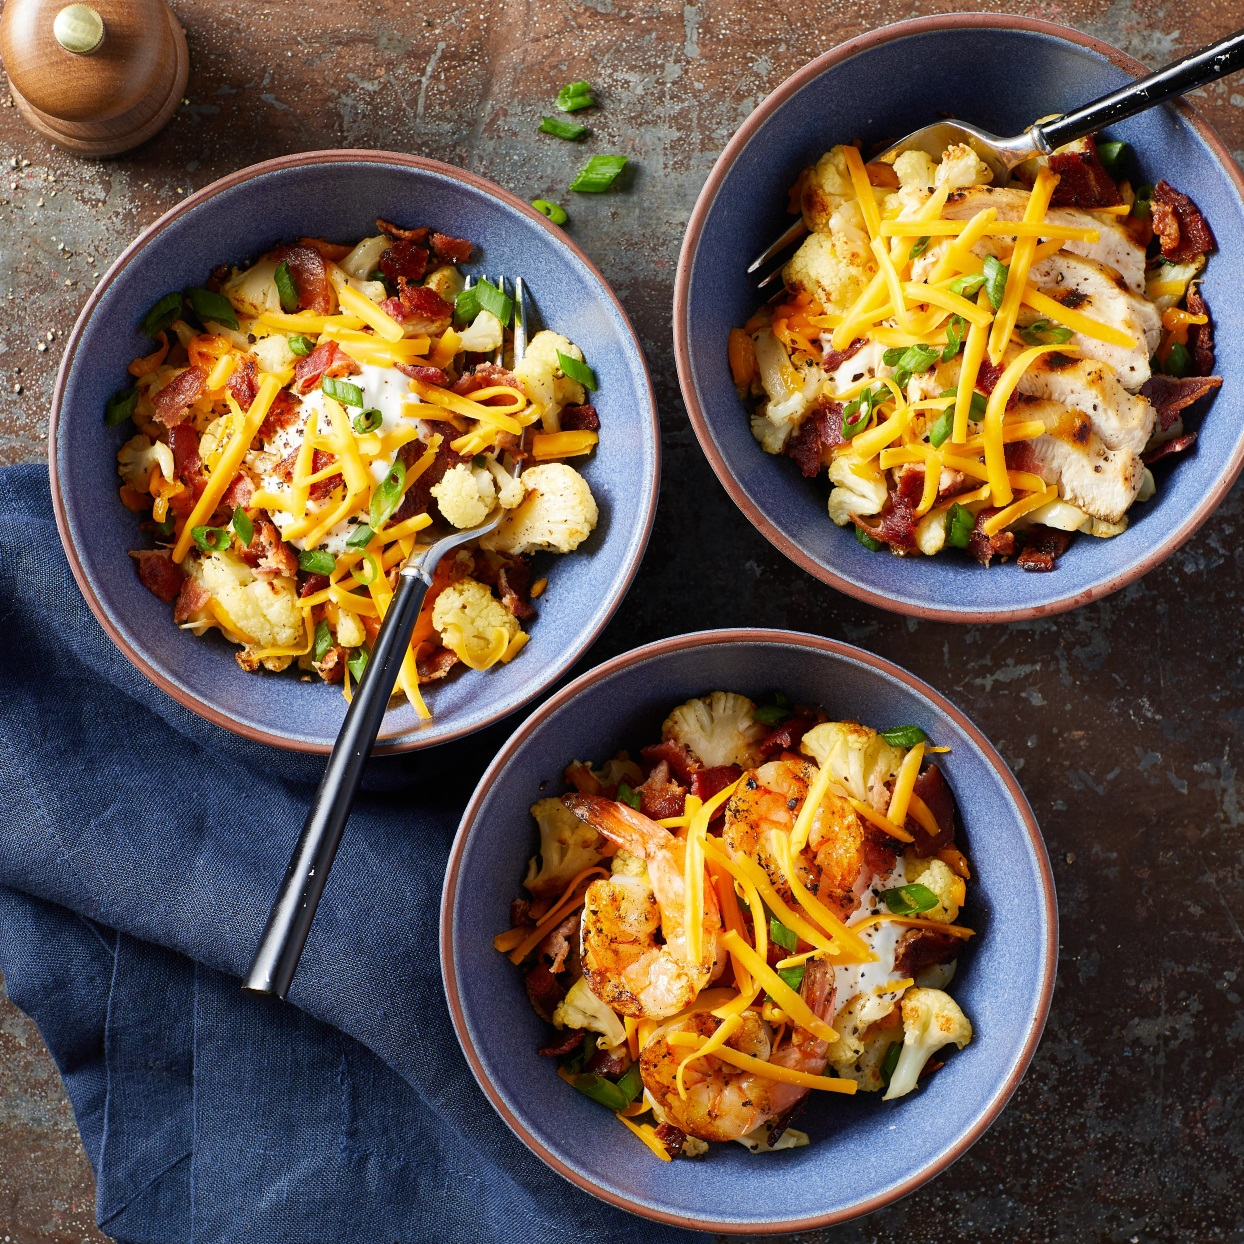 Loaded Cauliflower Bowls Trusted Brands